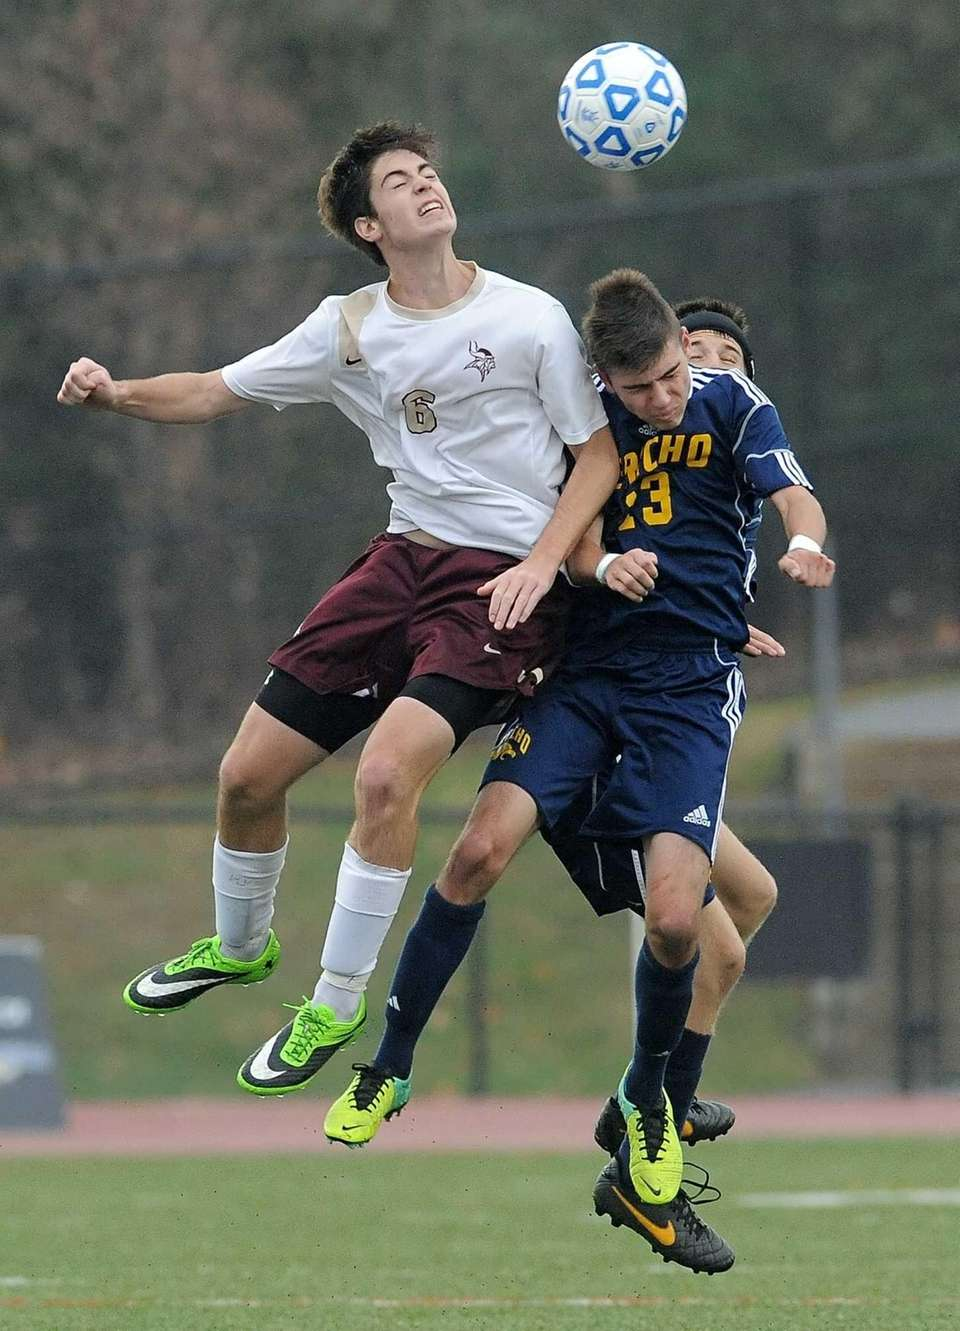 Jericho's Jon Amodio, right, challenges for a header